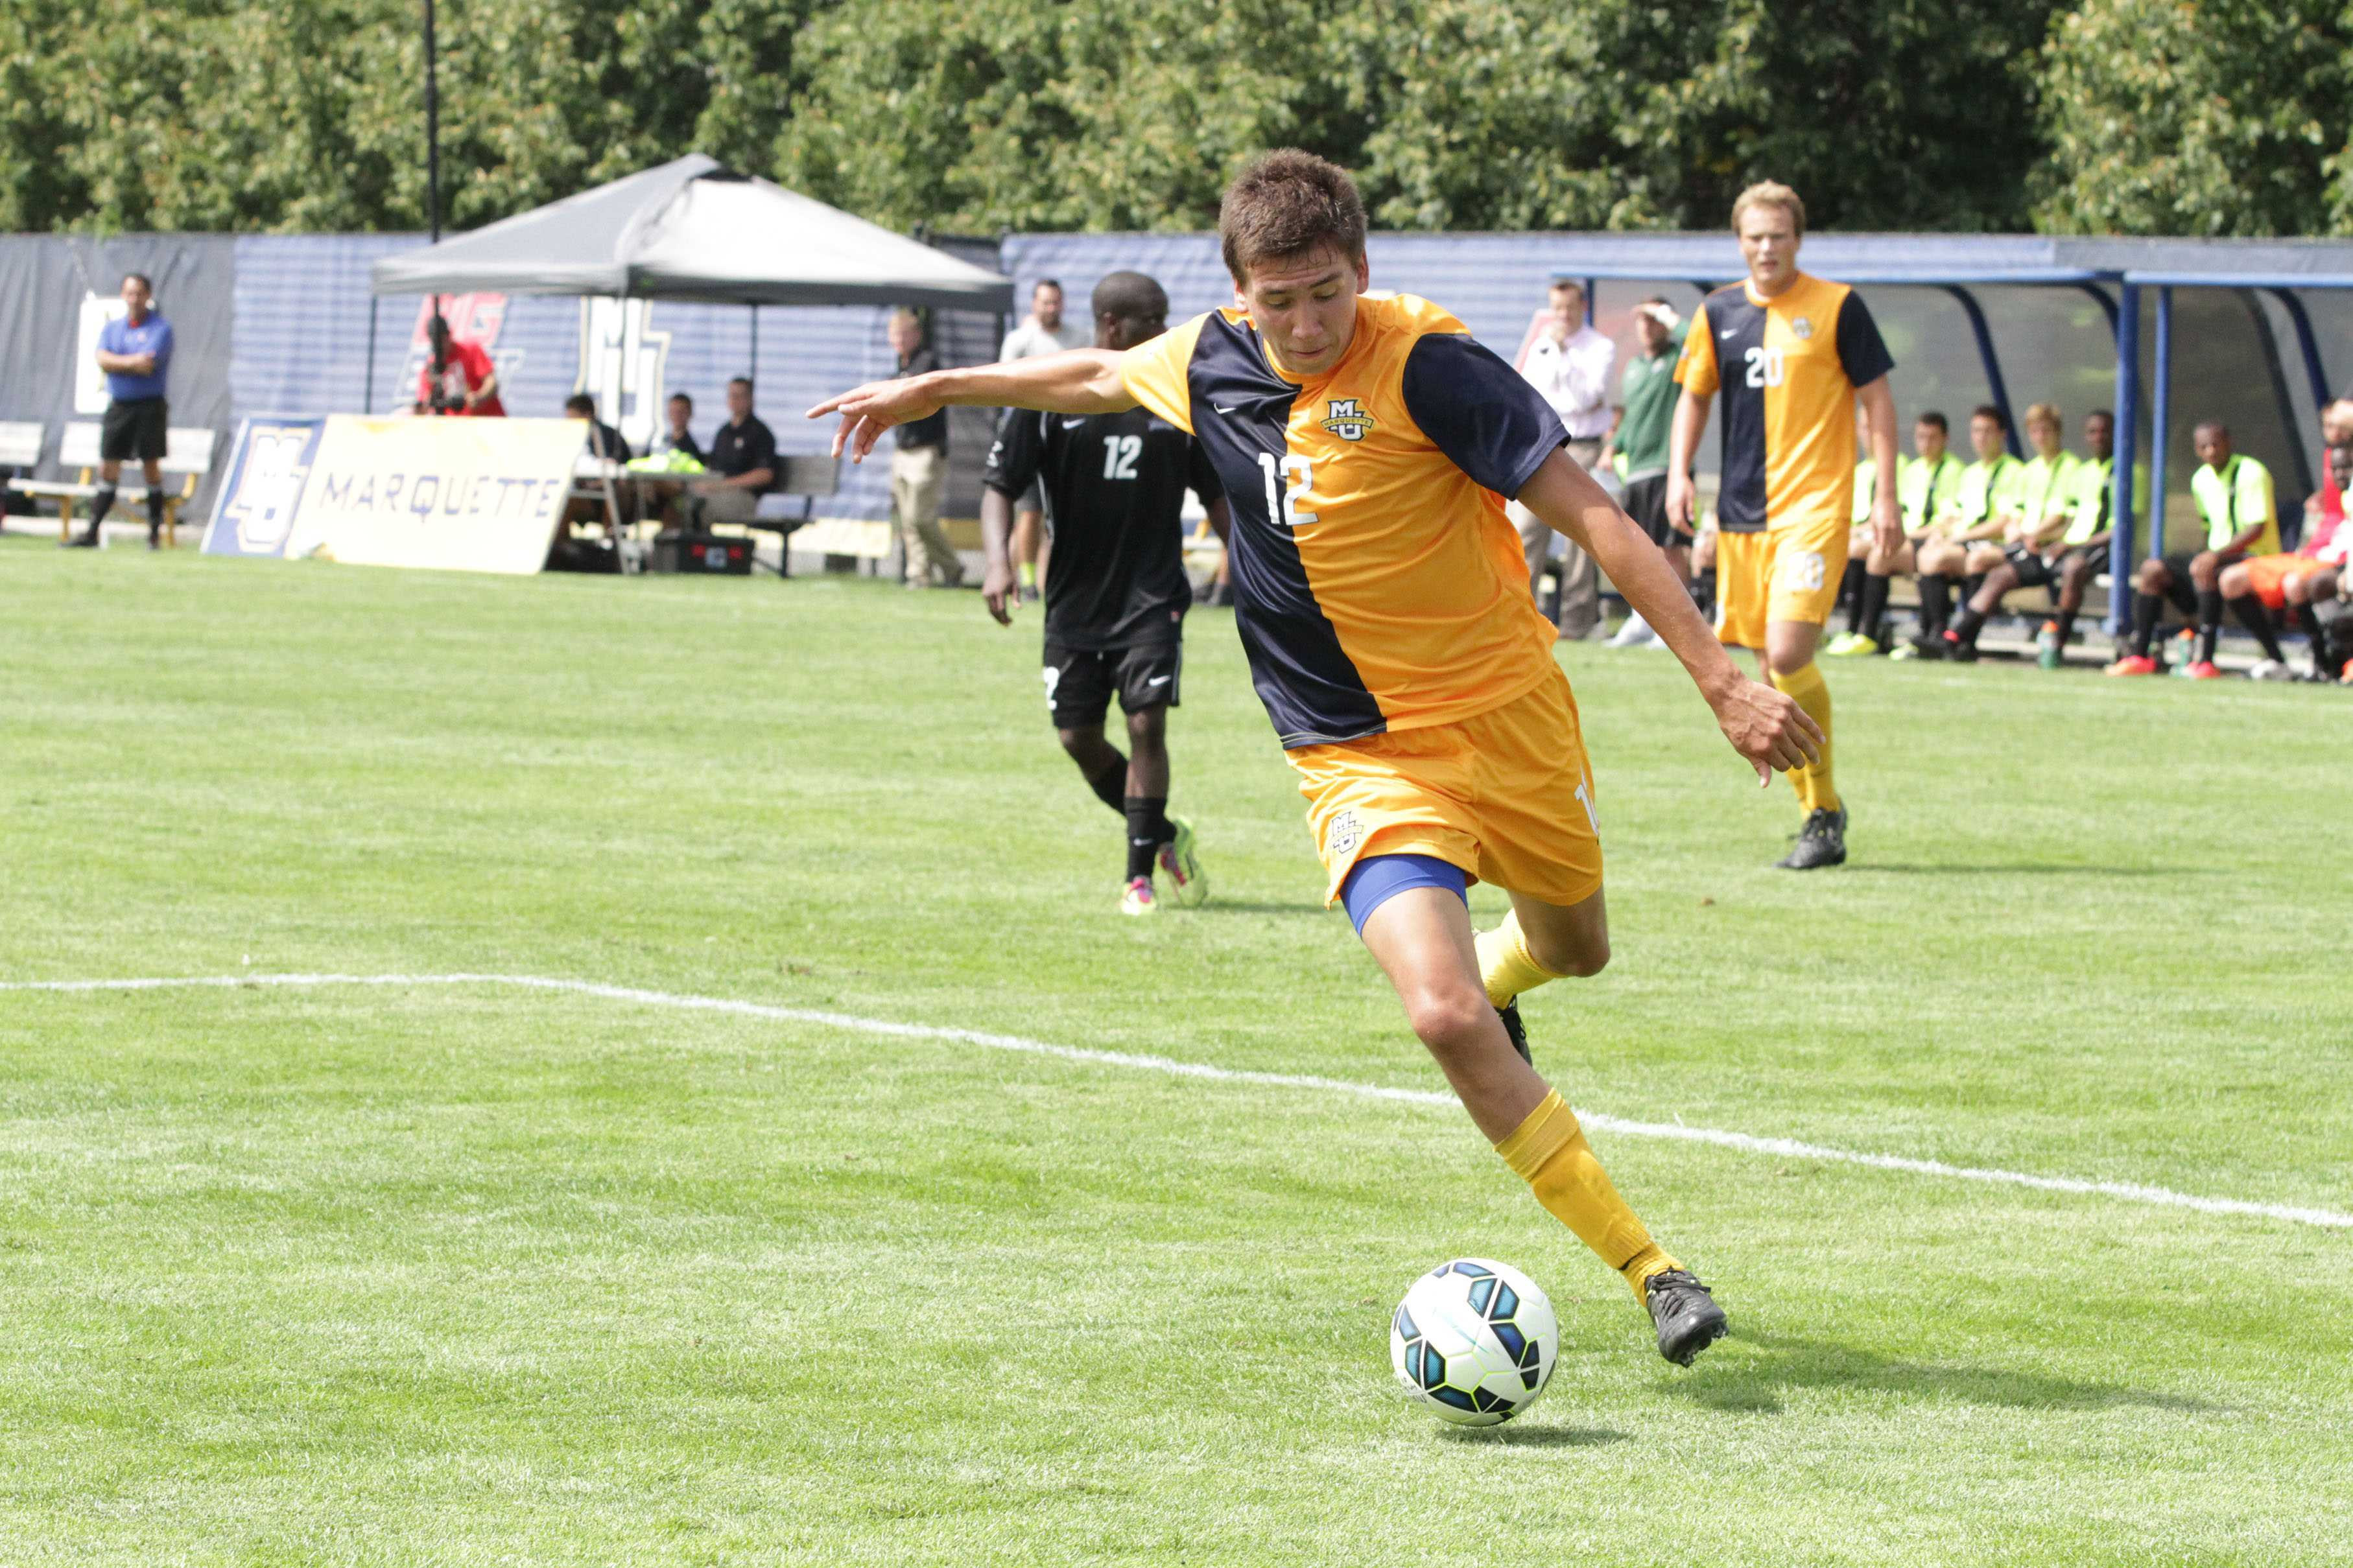 Alex McBride scored his first goal of the season in the 31st minute. Photo by Valeria Cardenas.